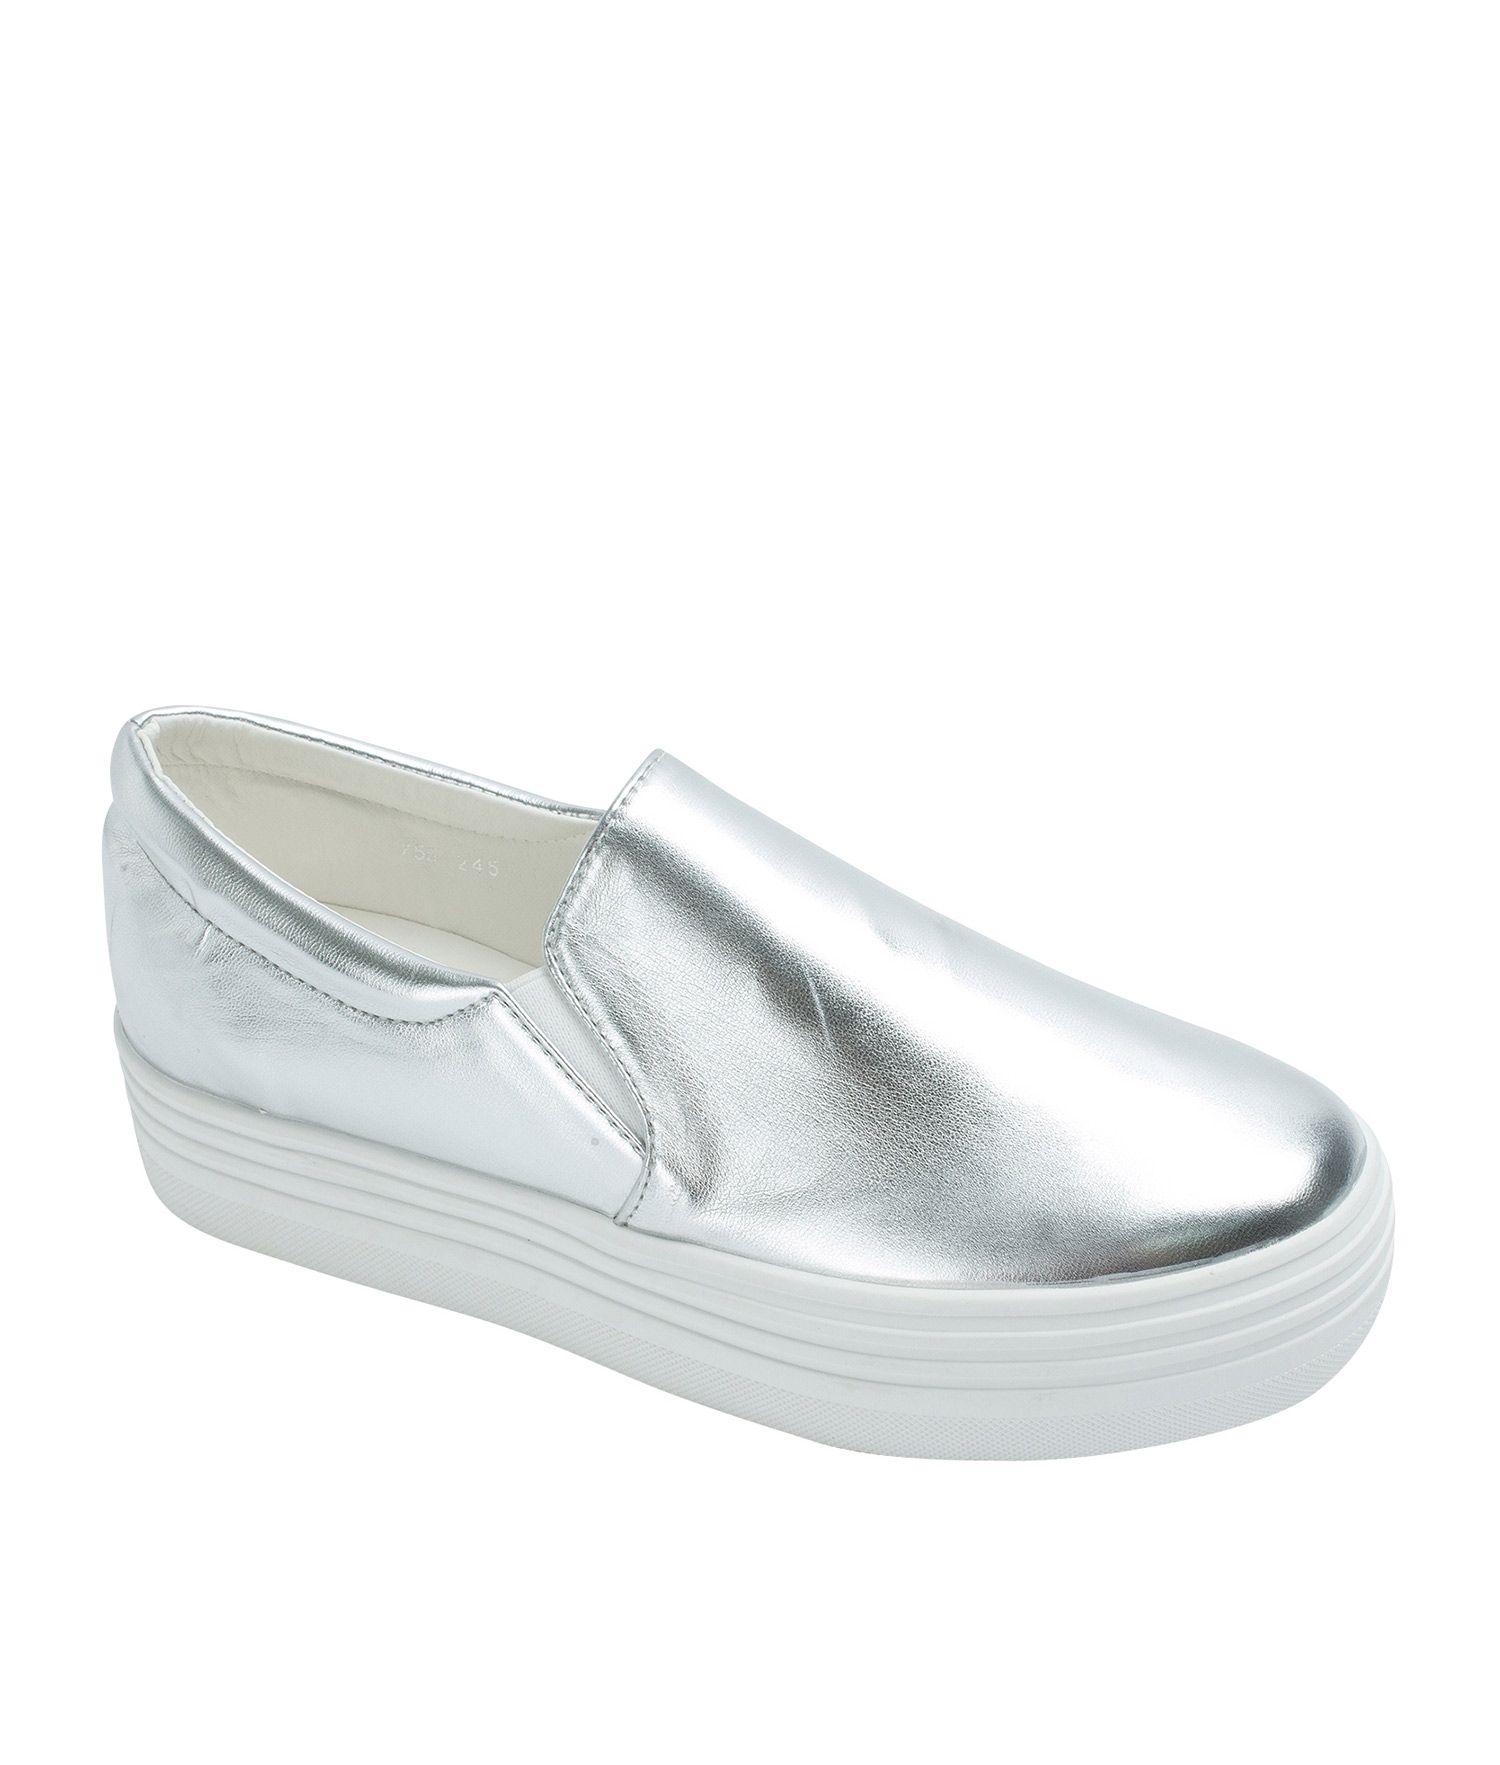 Classic Faux Leather Platform Slip On Sneakers